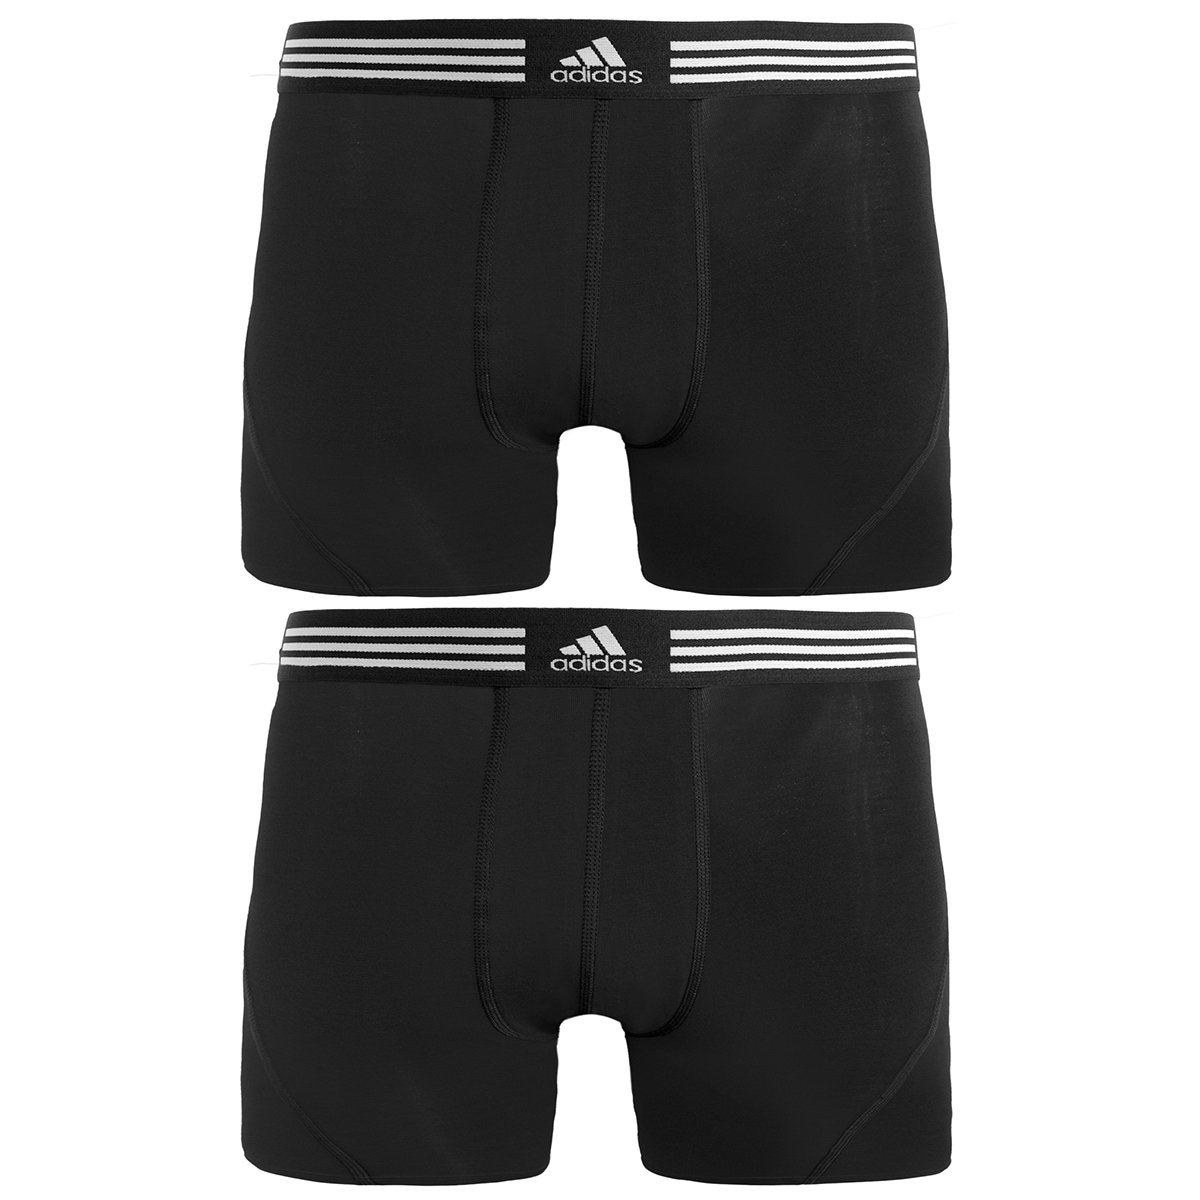 Amazon.com: adidas Men's Athletic Stretch Cotton Trunk Underwear (2-Pack):  Sports & Outdoors